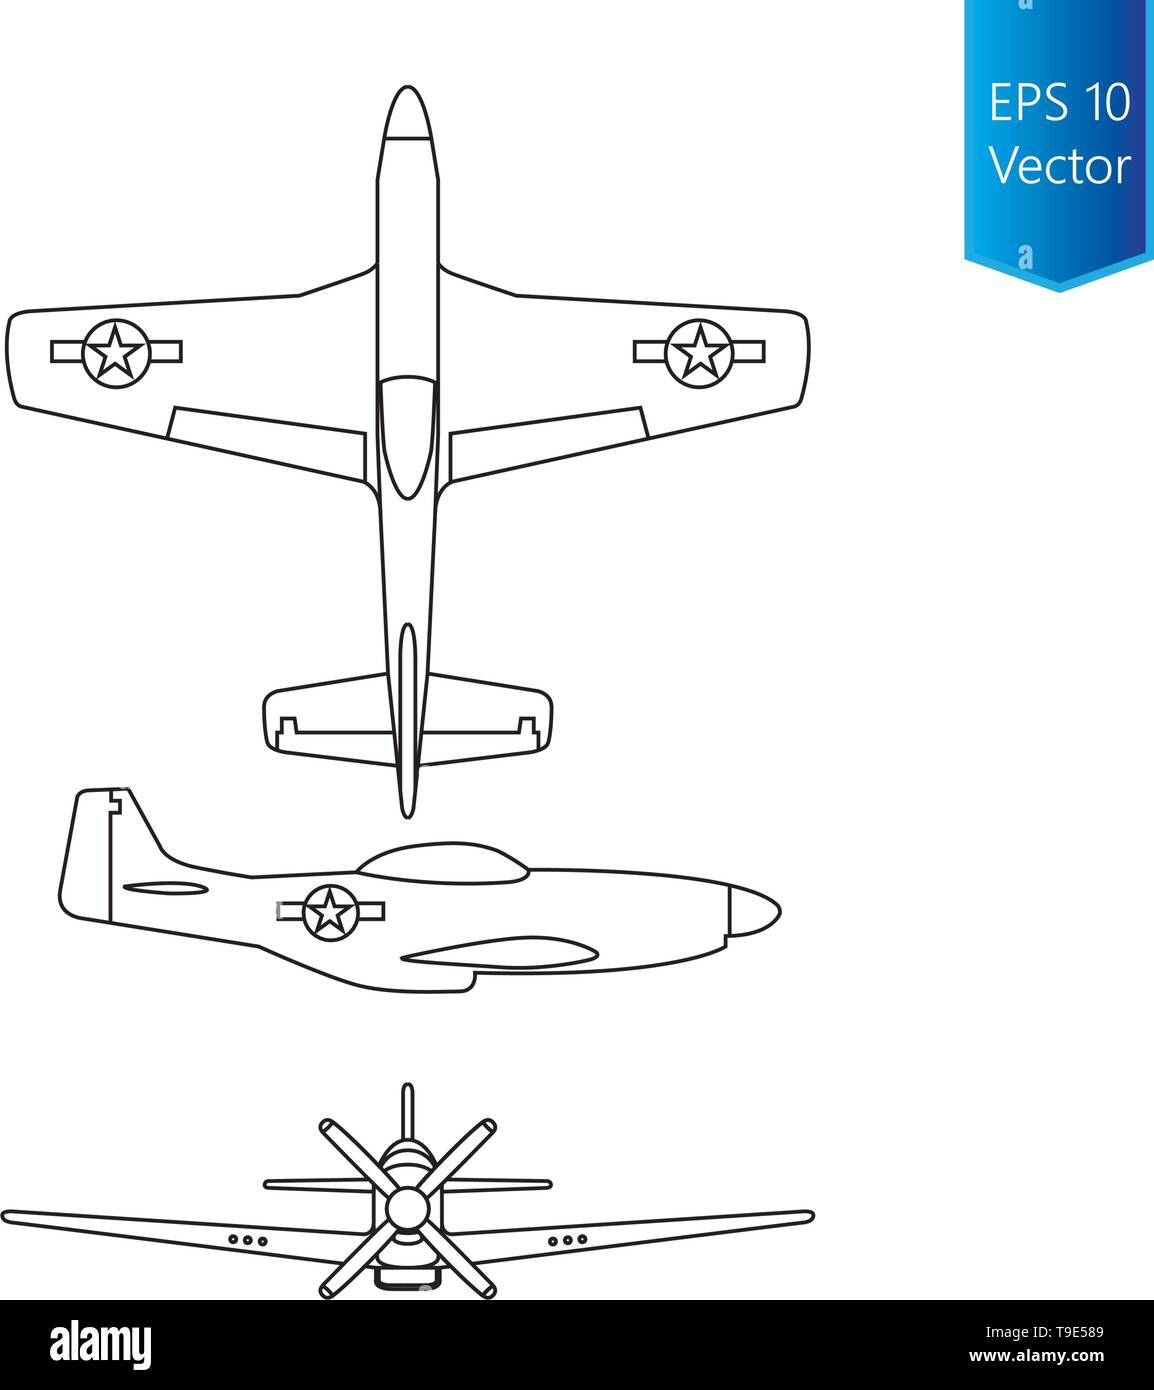 North american world war 2 fighter airplane vector - Stock Vector